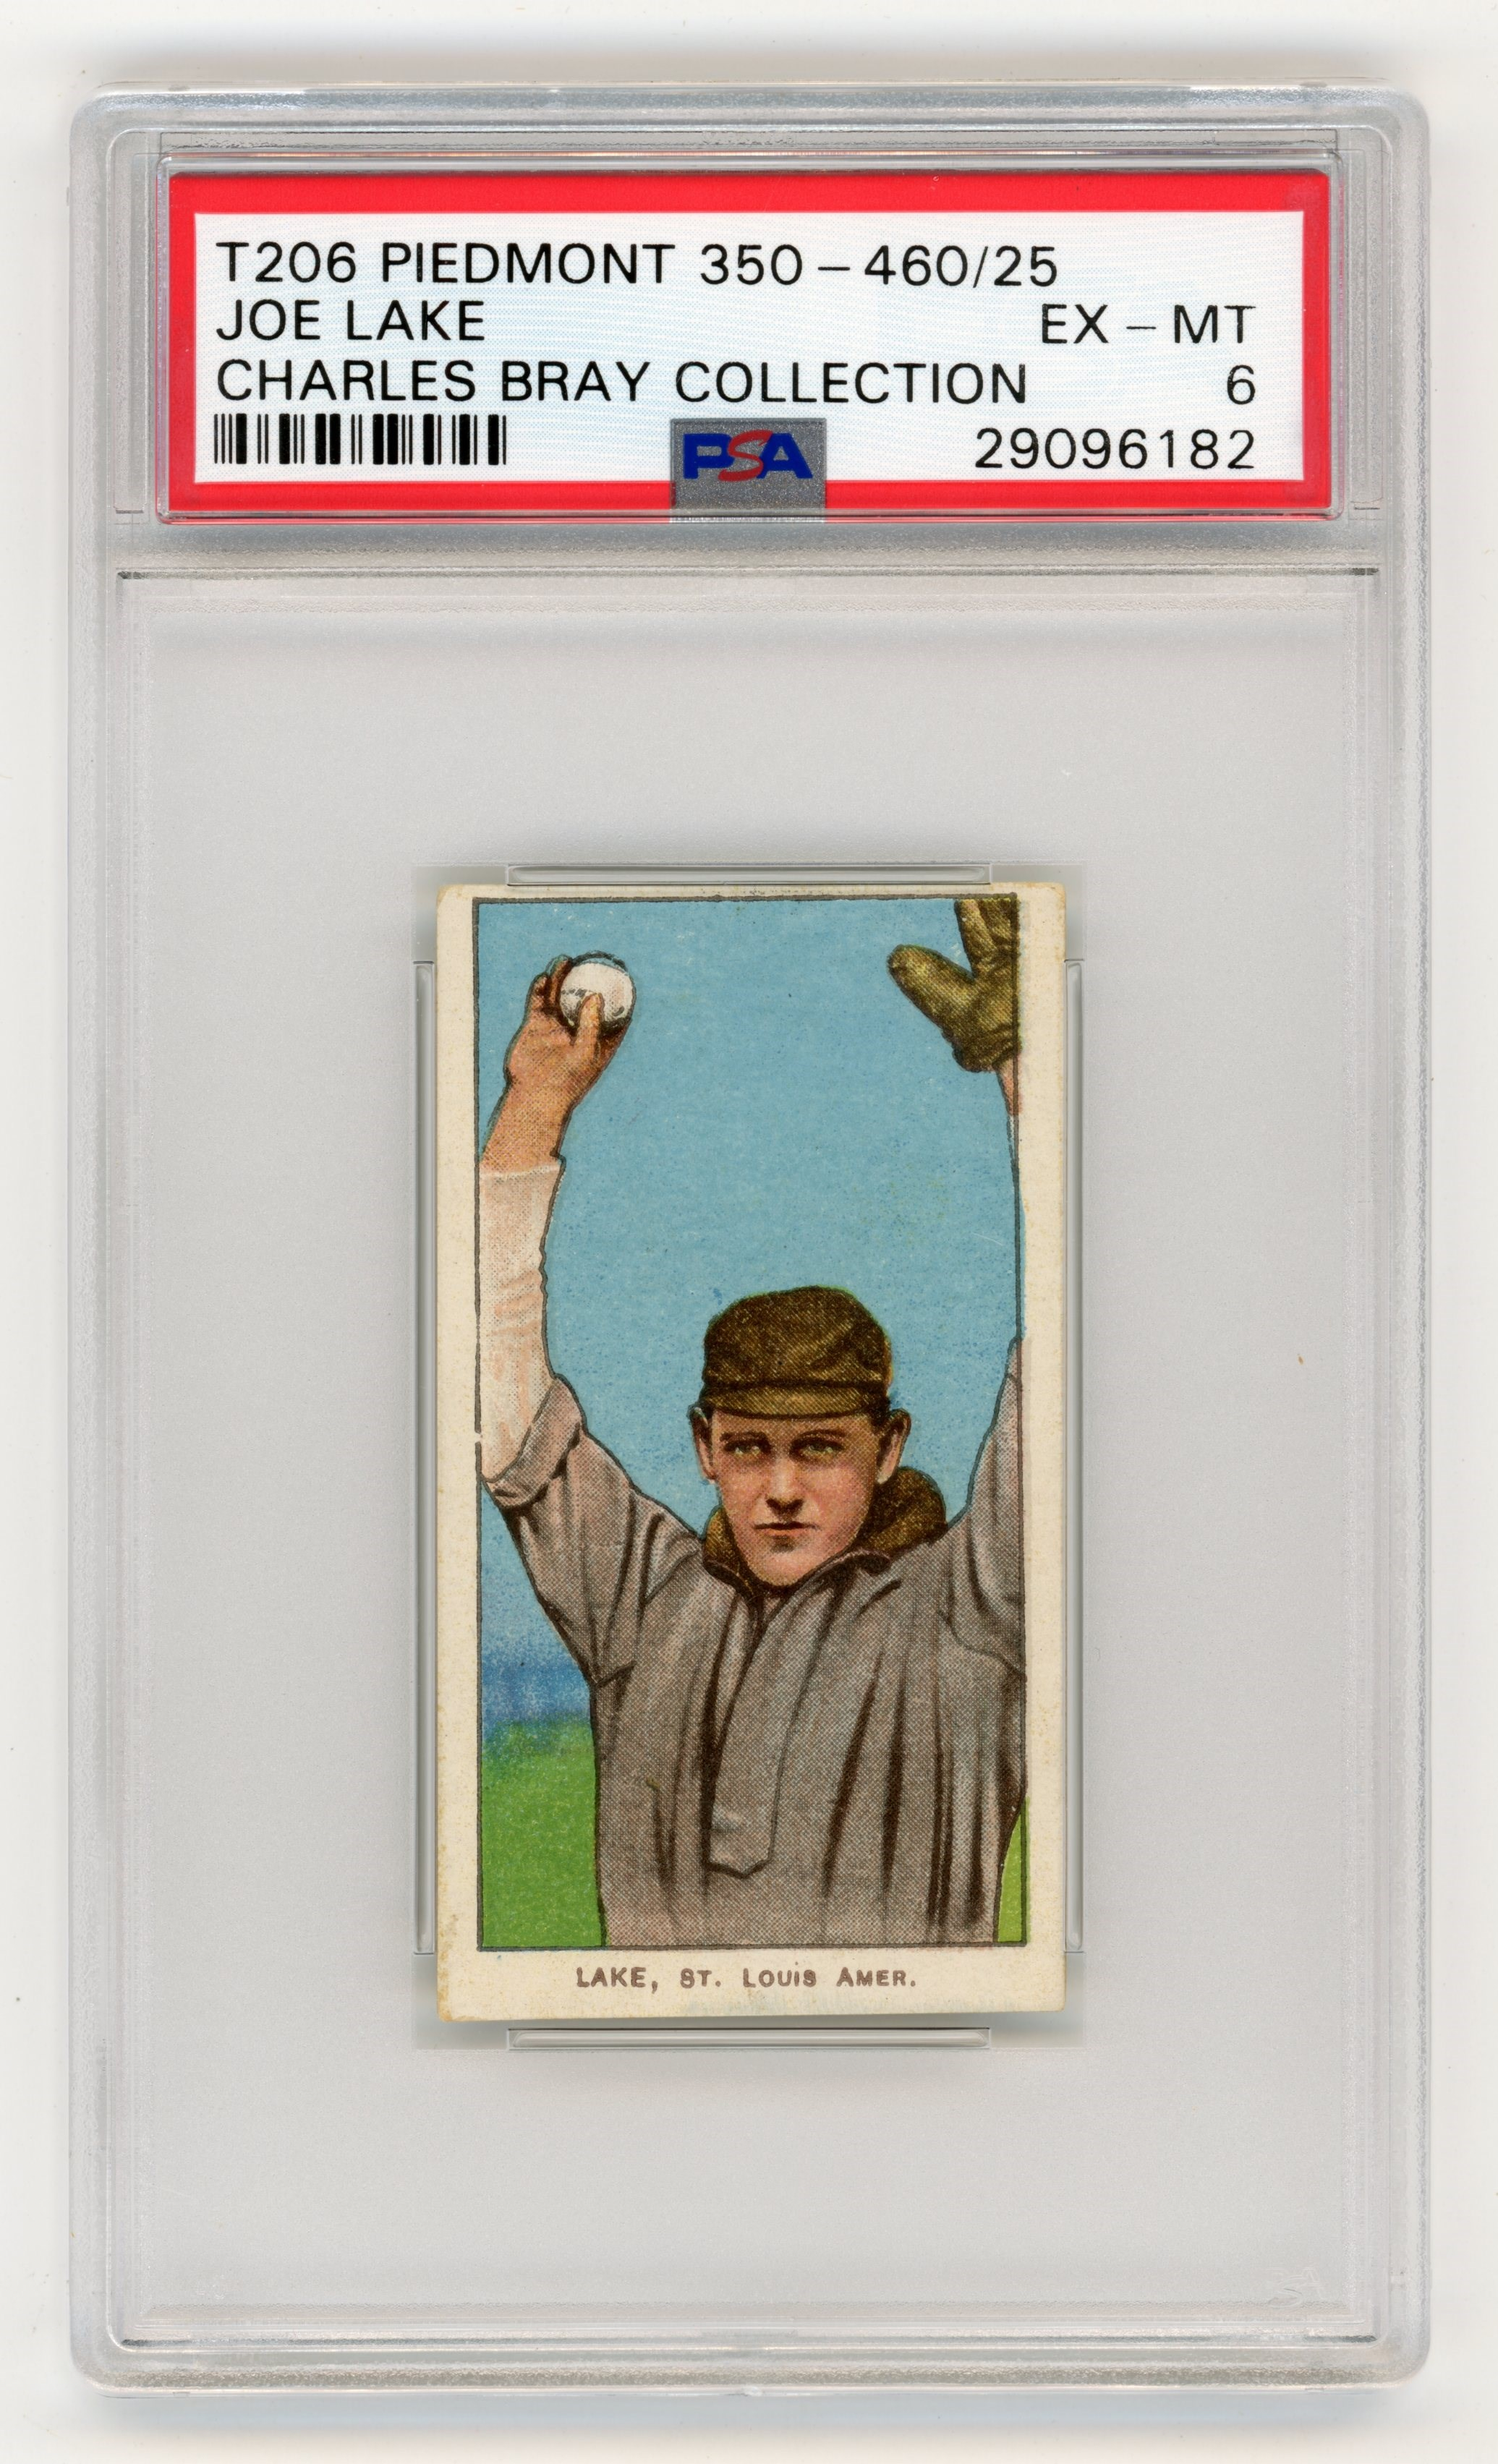 T206 Piedmont 350-460/25 Joe Lake PSA EX-MT 6 From the Charles Bray Collection.